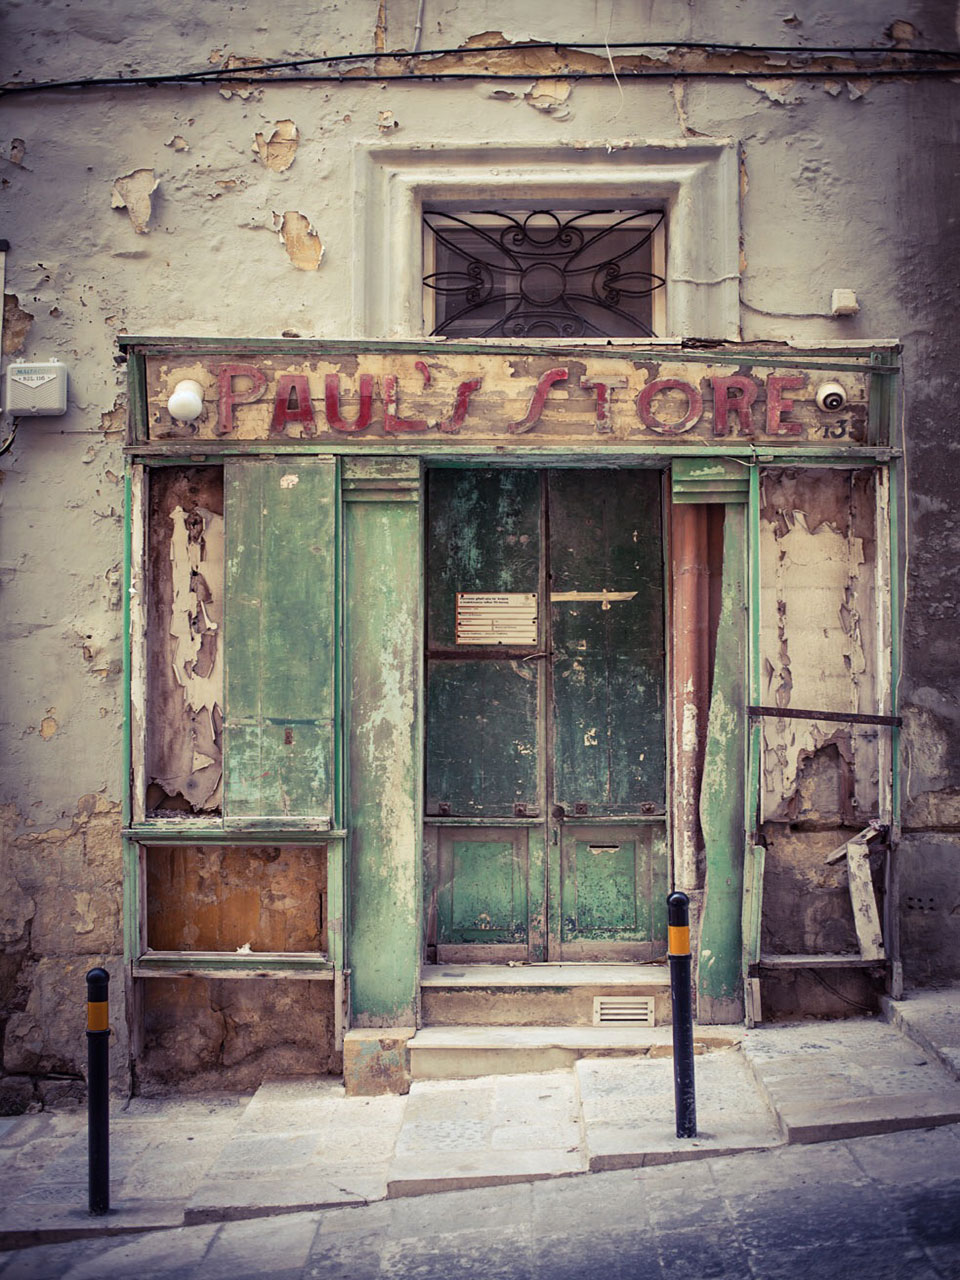 disappearingMalta - Paul's Store, vintage storefront, Valletta, Malta ©Helen Jones-Florio photography prints